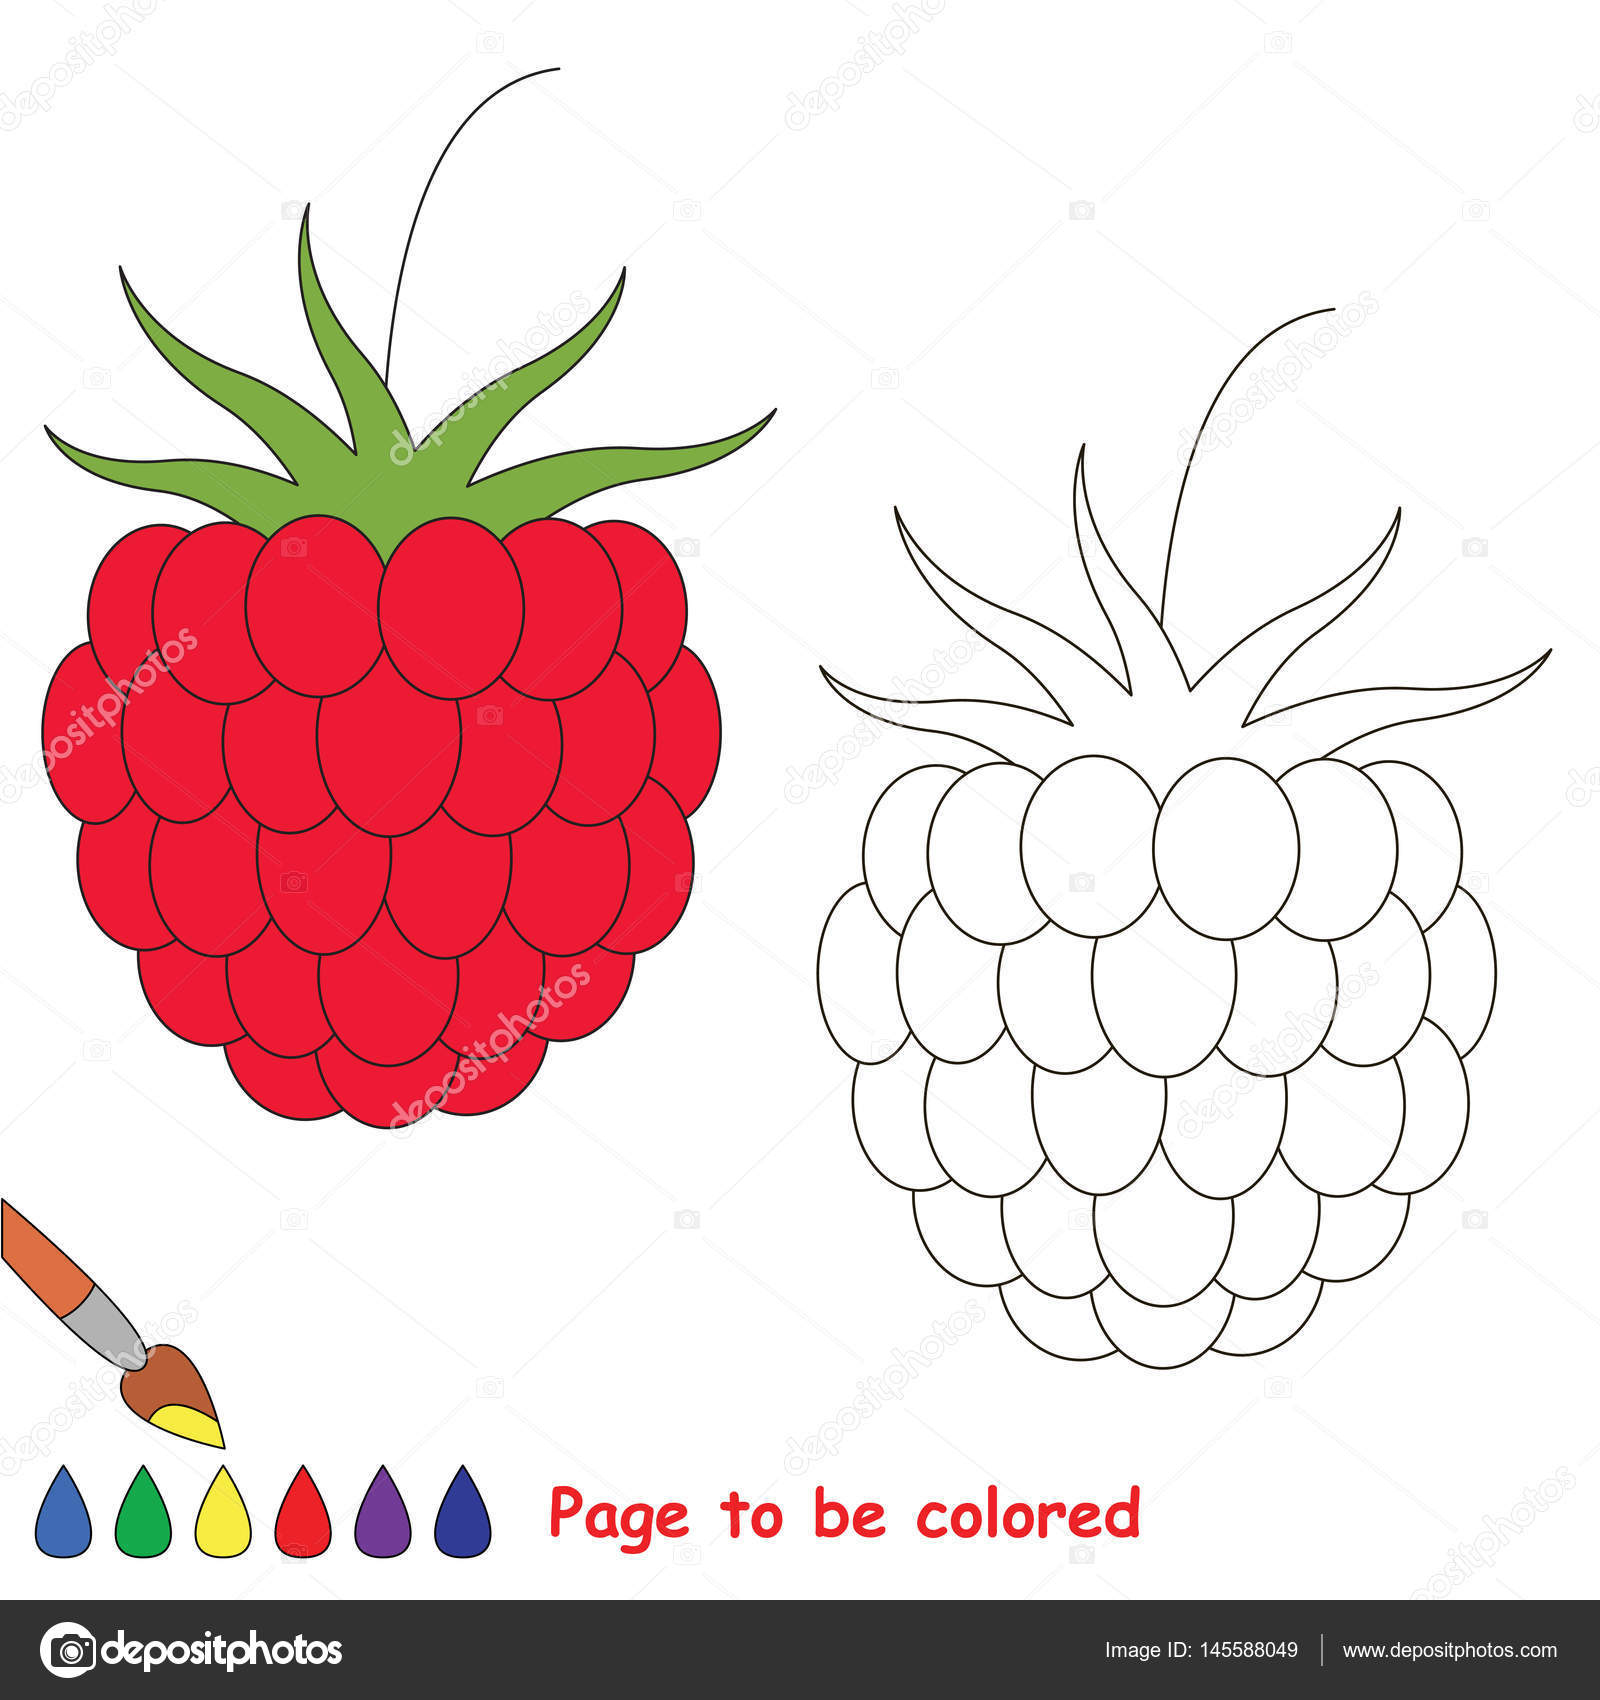 Coloring Kid Game Educational Page To Be Colored Stock Vector